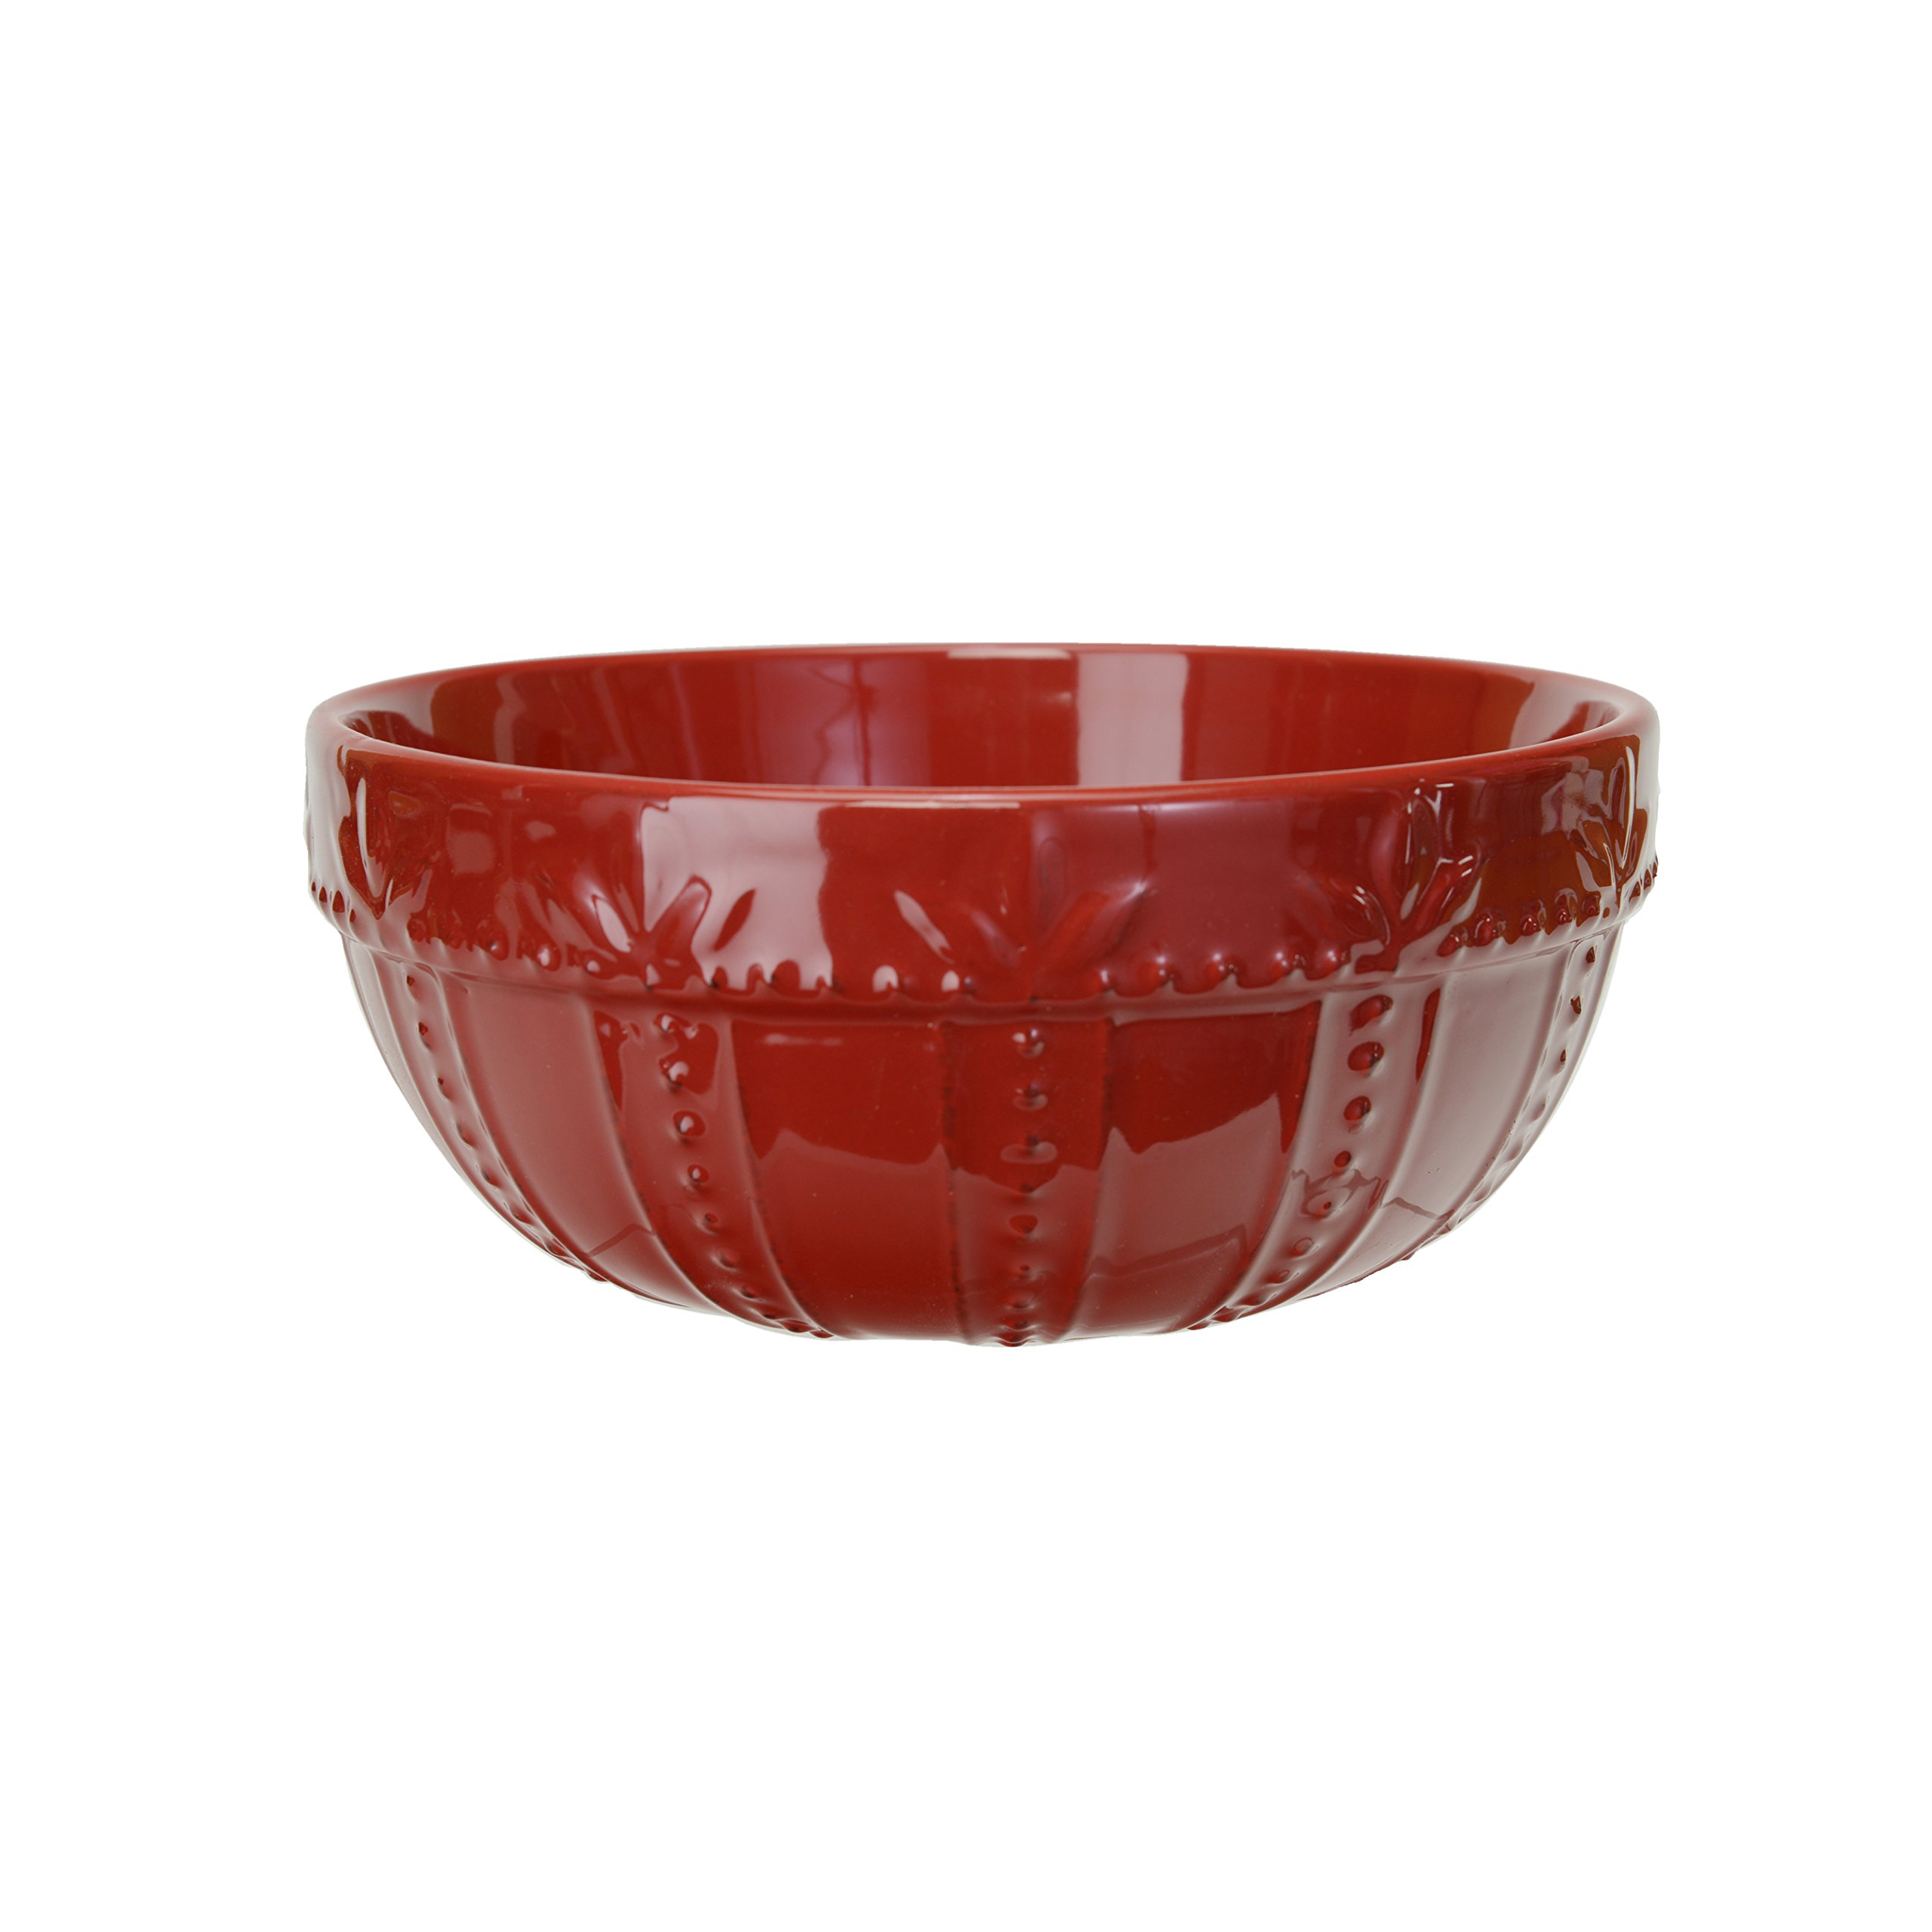 Signature Housewares Sorrento Collection Set of 2 Mixing Bowls, 8-Inch and 9-Inch, Ruby